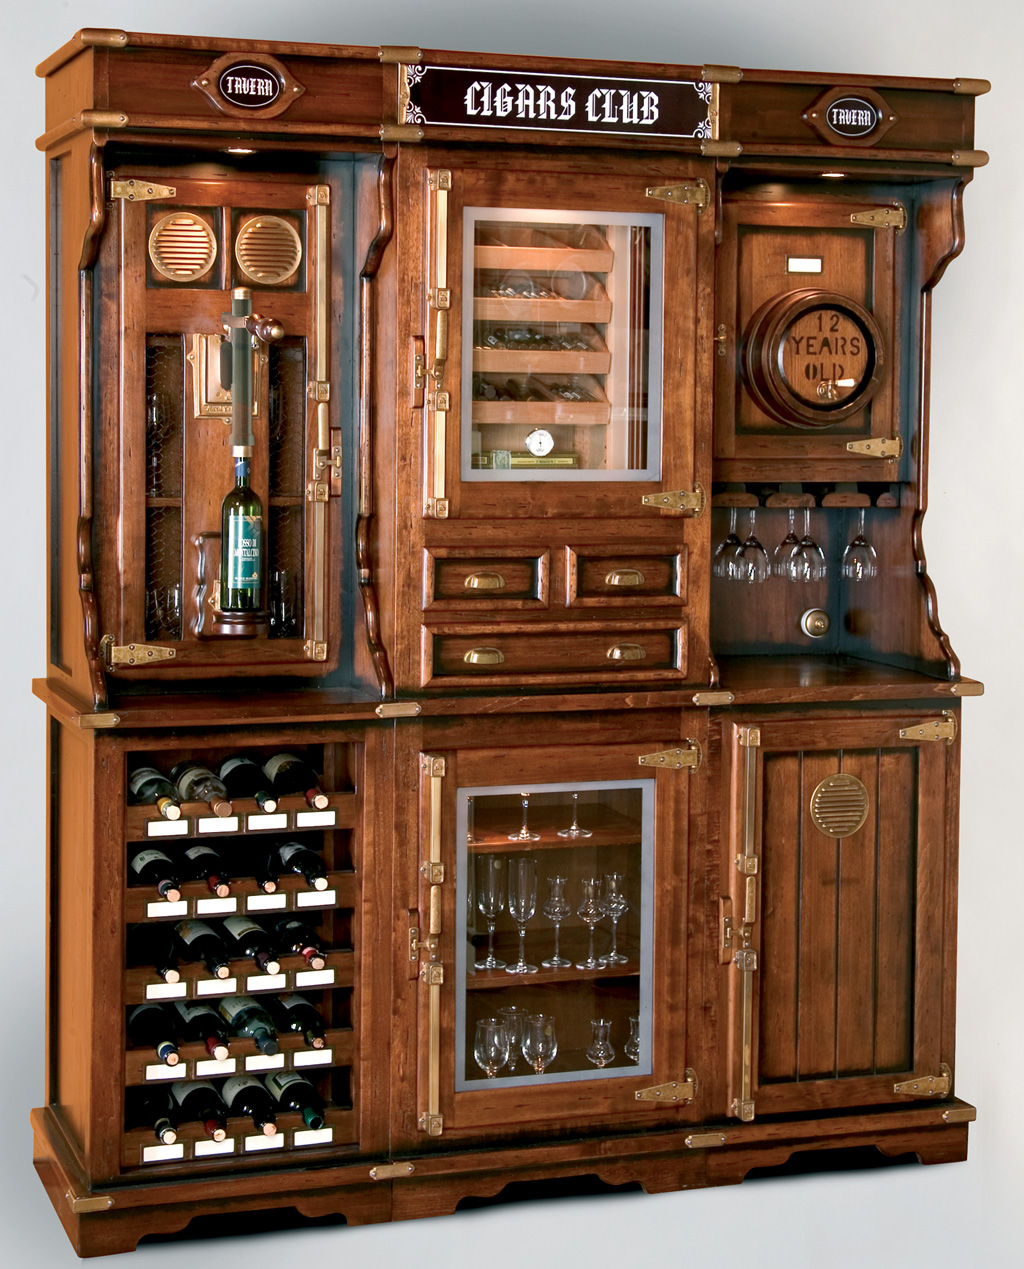 A unique cigar and wine cabinet with a humidor for up to 400 cigars. Complete with glasses, pouring-storage system, corkscrew, lighting. Solid wood and handcrafted to look old world